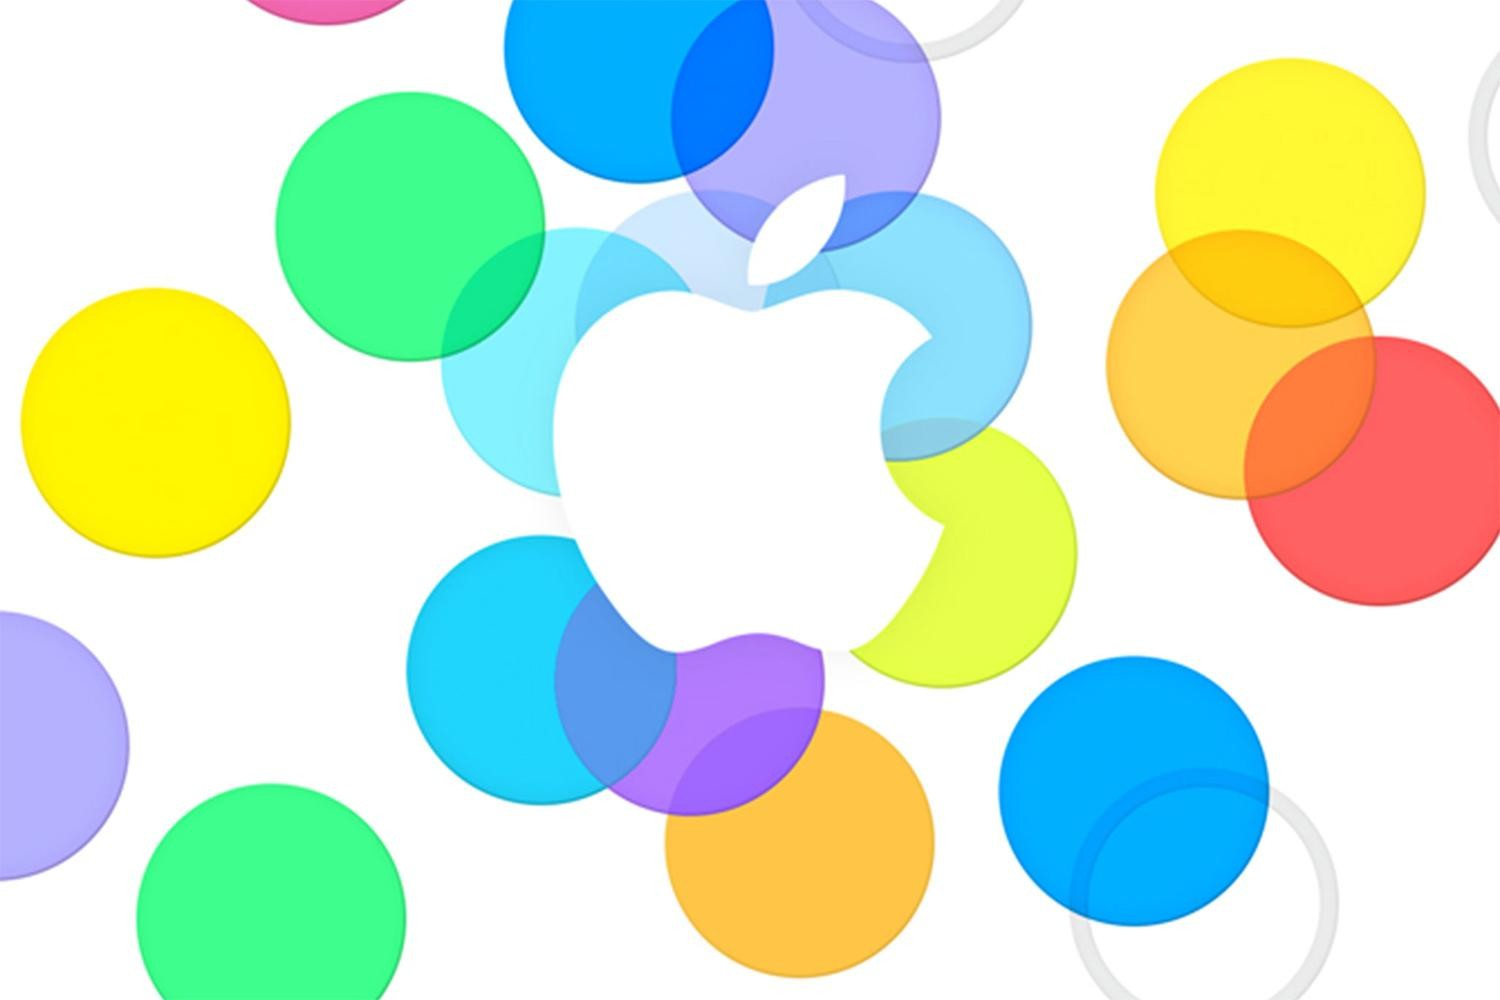 apple-sep-10-iphone-5s-5c-1500x1000